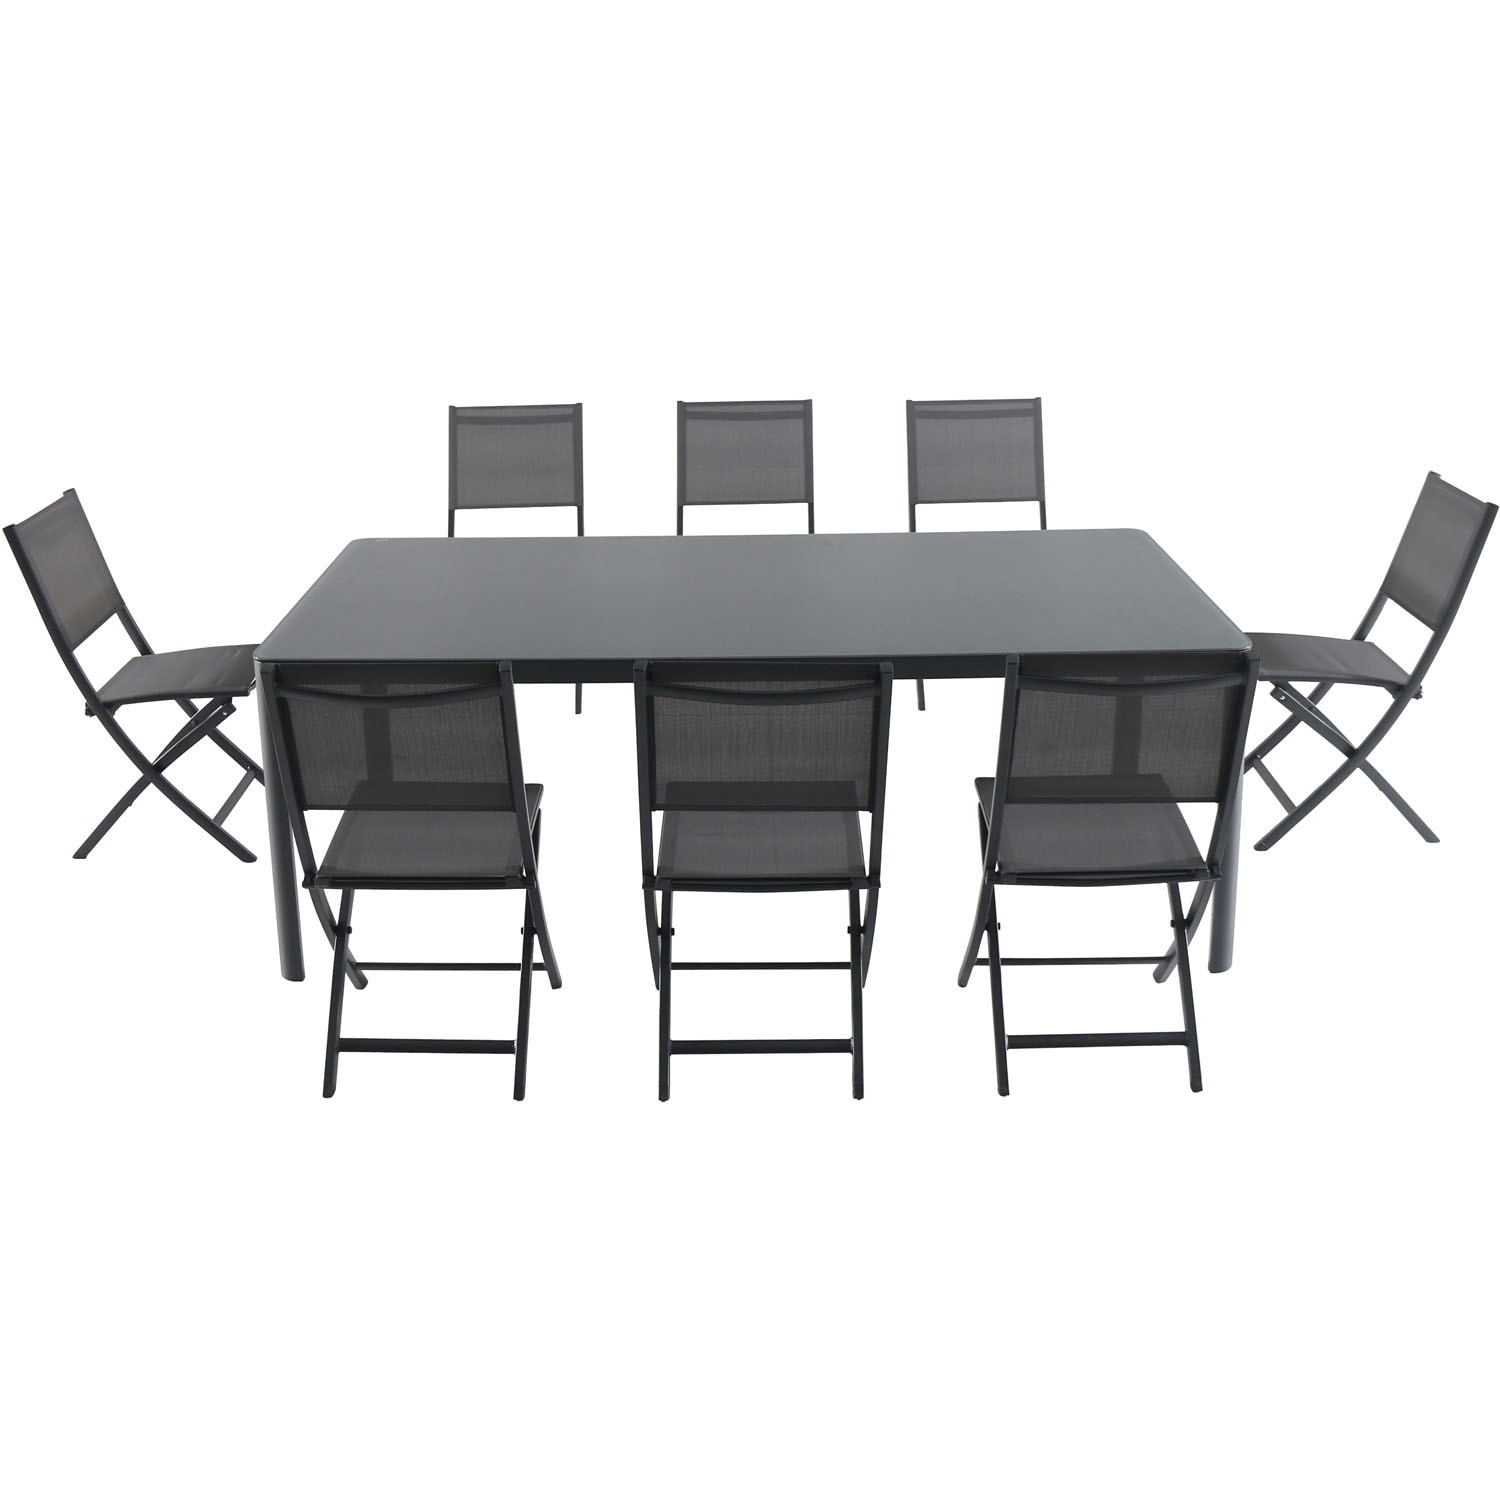 Cambridge Mesa 9-Piece Outdoor Dining Set with 8 Folding Chairs and a 43 x 82 Glass-Top Table